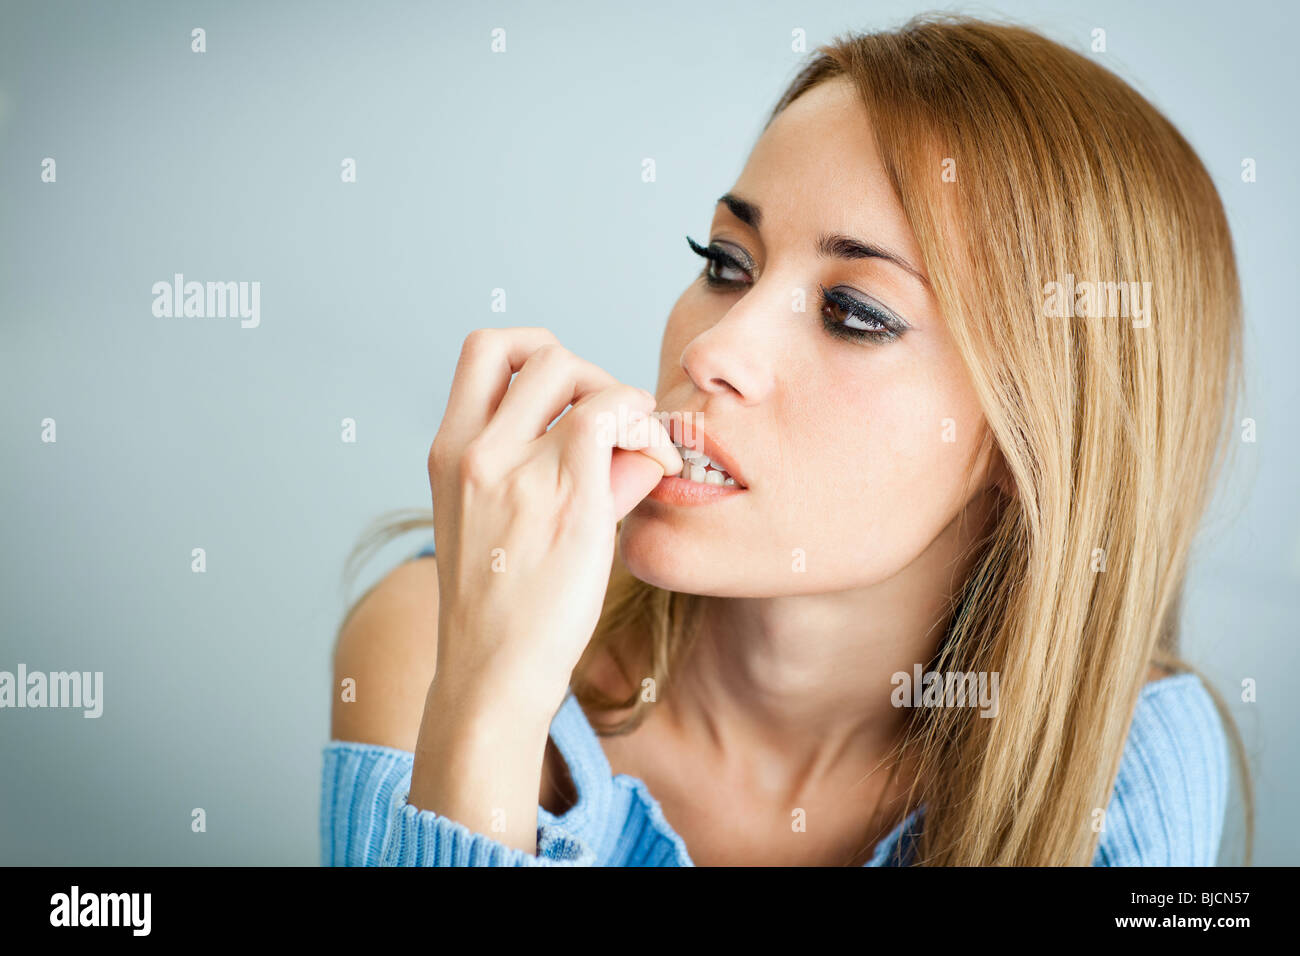 portrait of 30 years old woman biting her fingernails on cyan background. Horizontal shape, Copy space - Stock Image